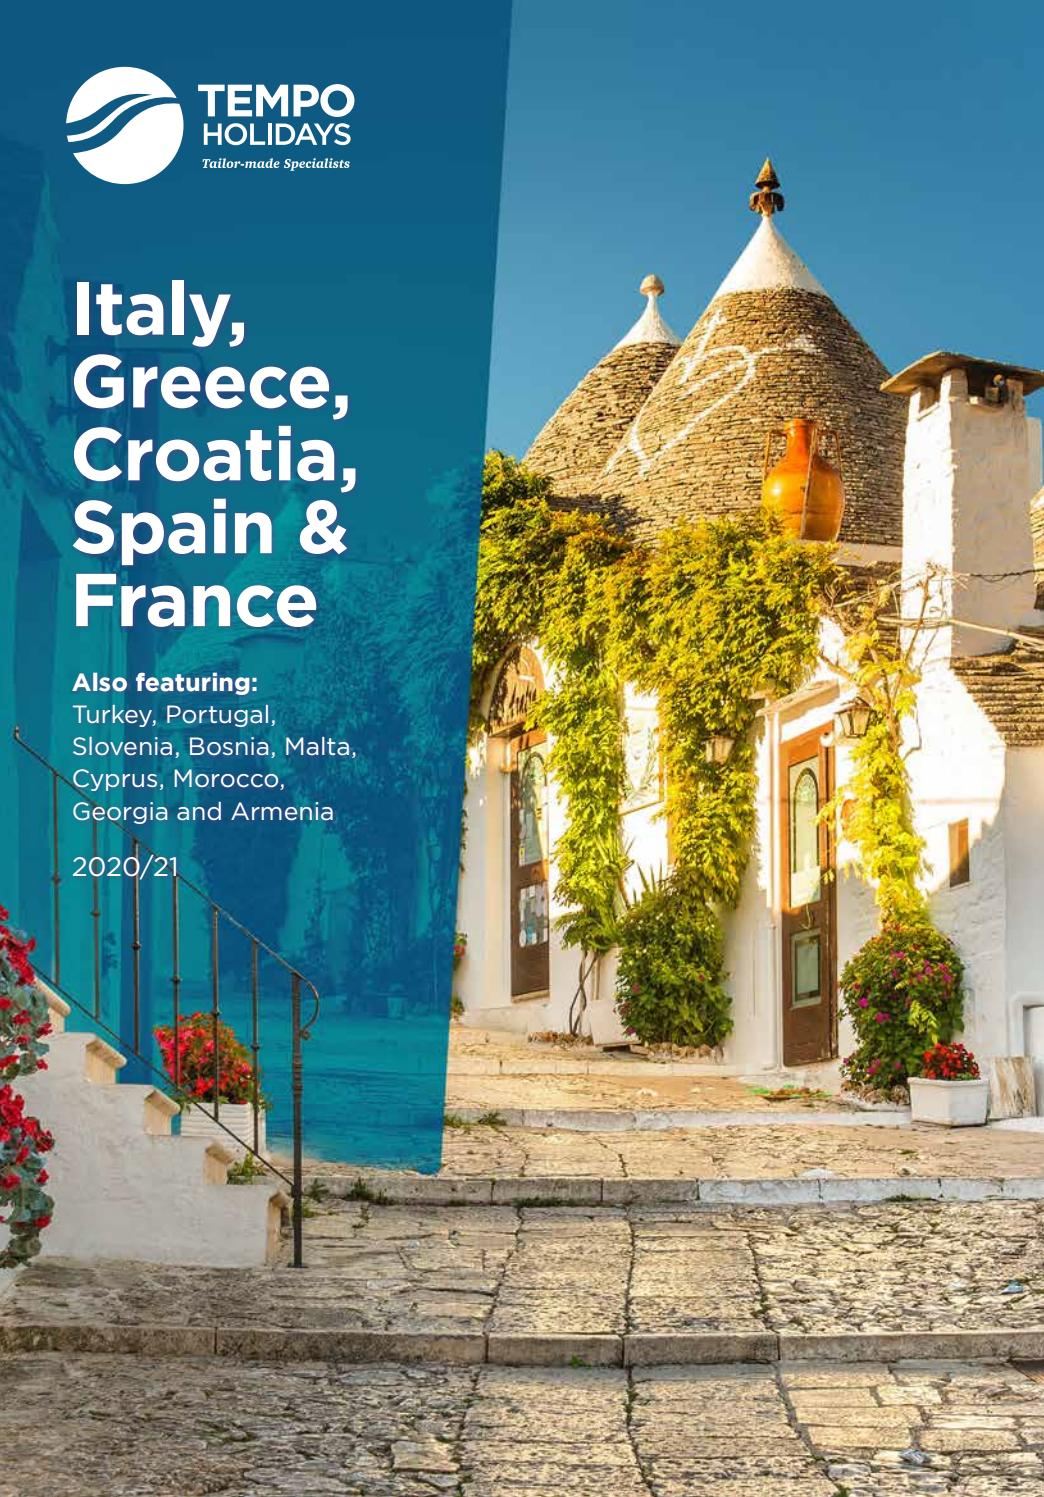 Tempo Holidays 2020 The Mediterranean Brochure Italy Greece Croatia Spain France By Cox And Kings Issuu